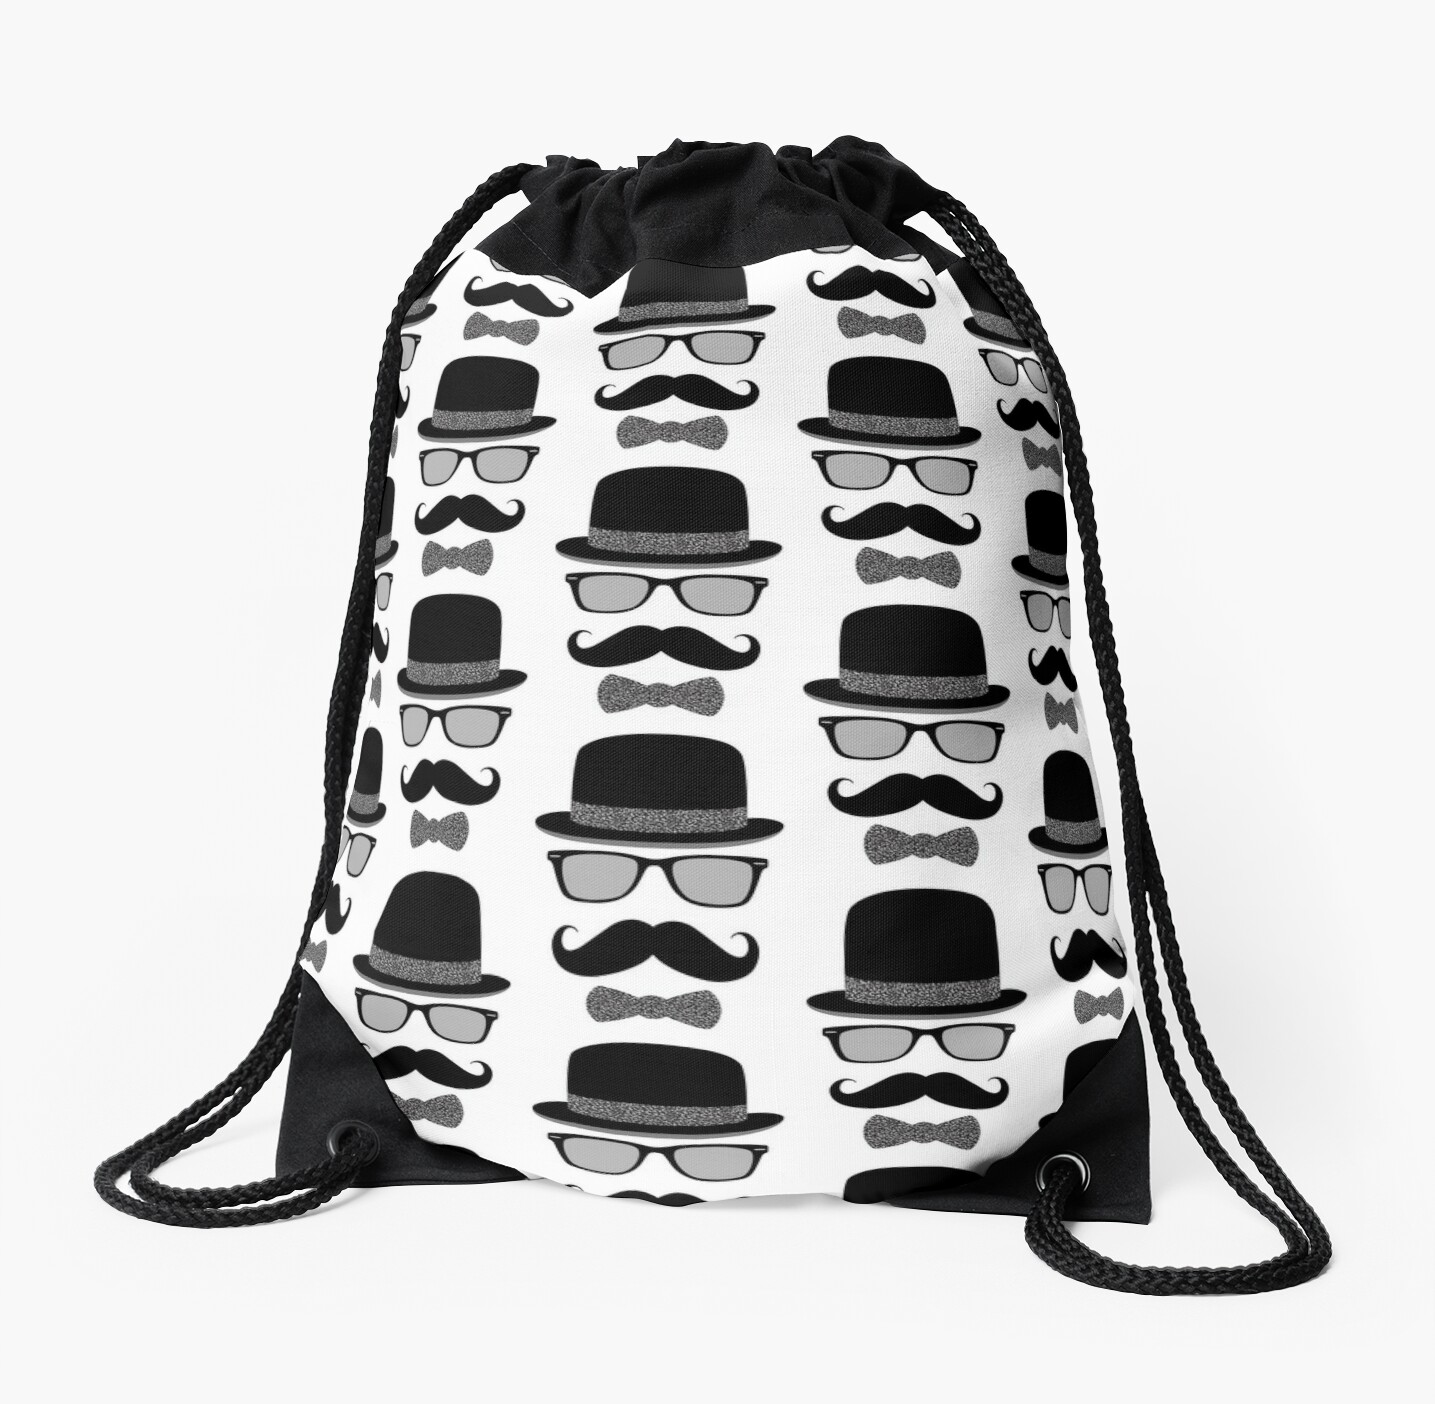 Hipster Man - Bowler Hat Glasses Mustache and Bowtie in Black White Gray by Elsy's Art